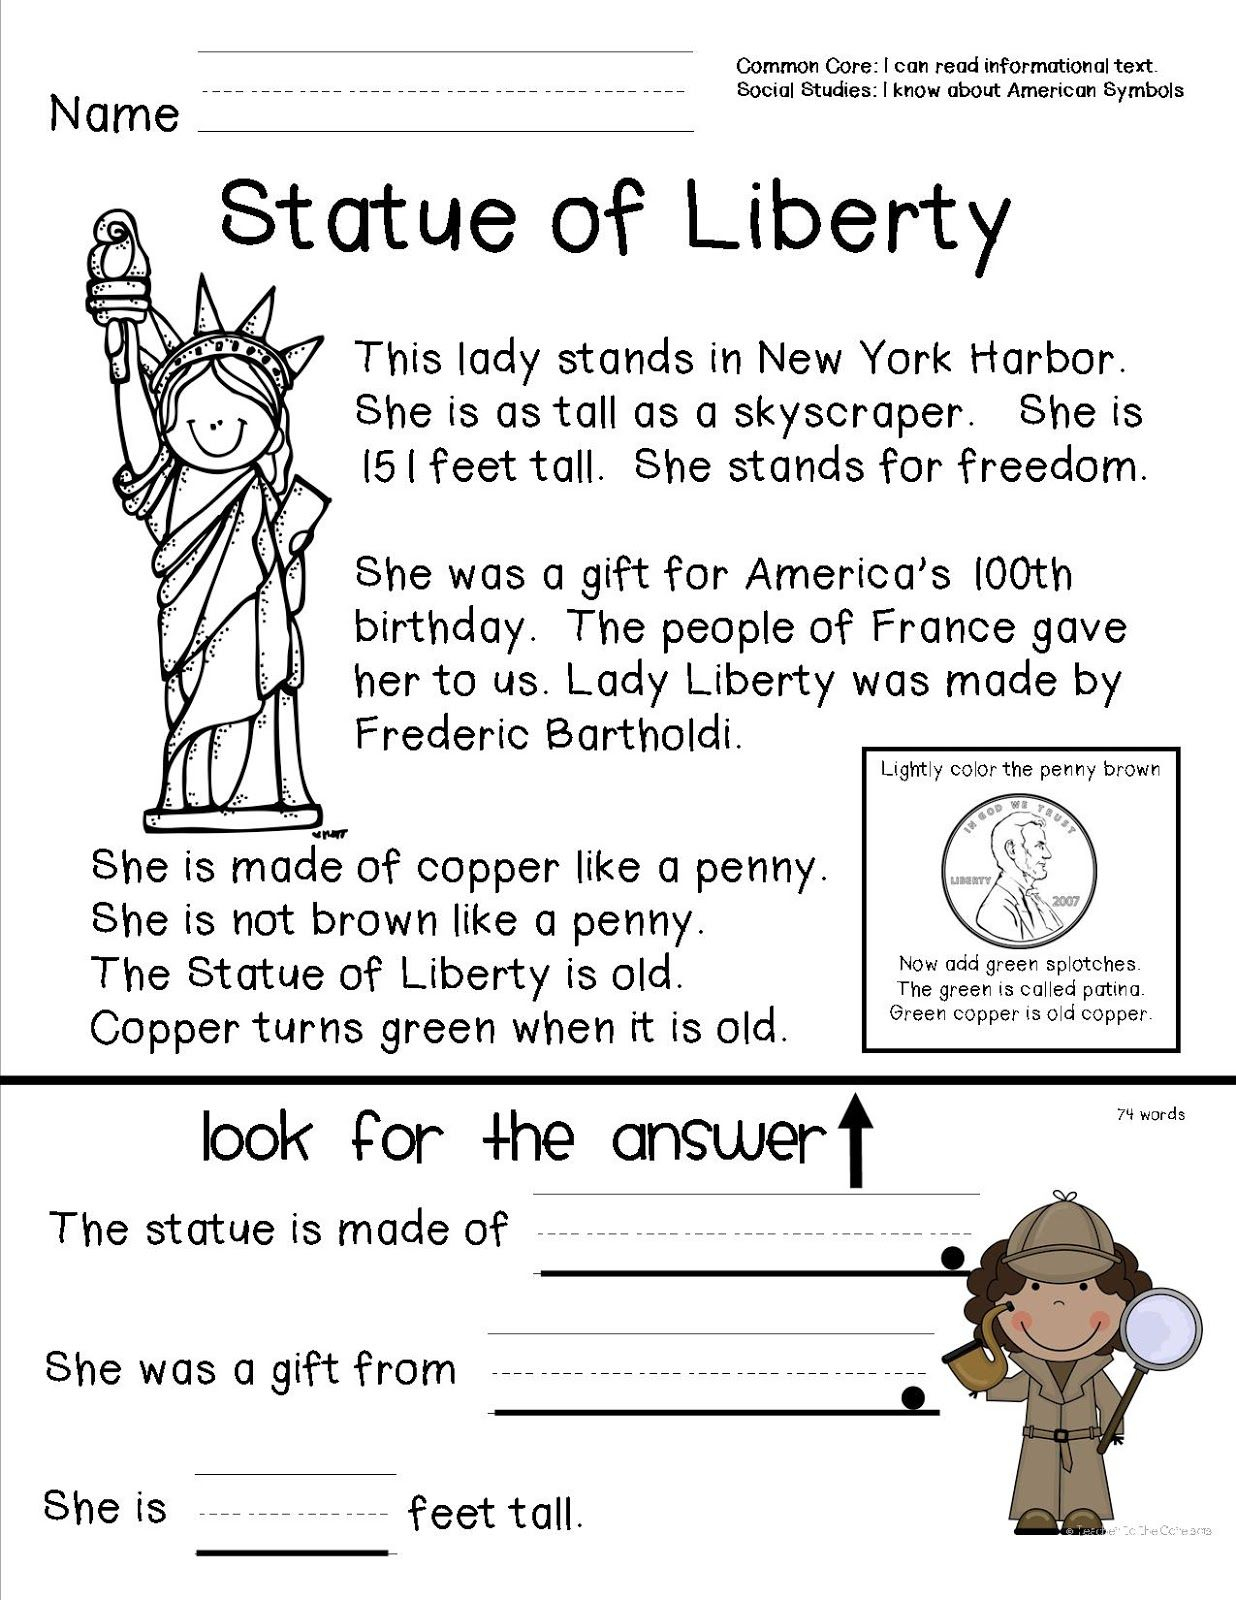 Reading Comprehension Sheet About The Statue Of Liberty For Primary - Free Printable Social Studies Worksheets